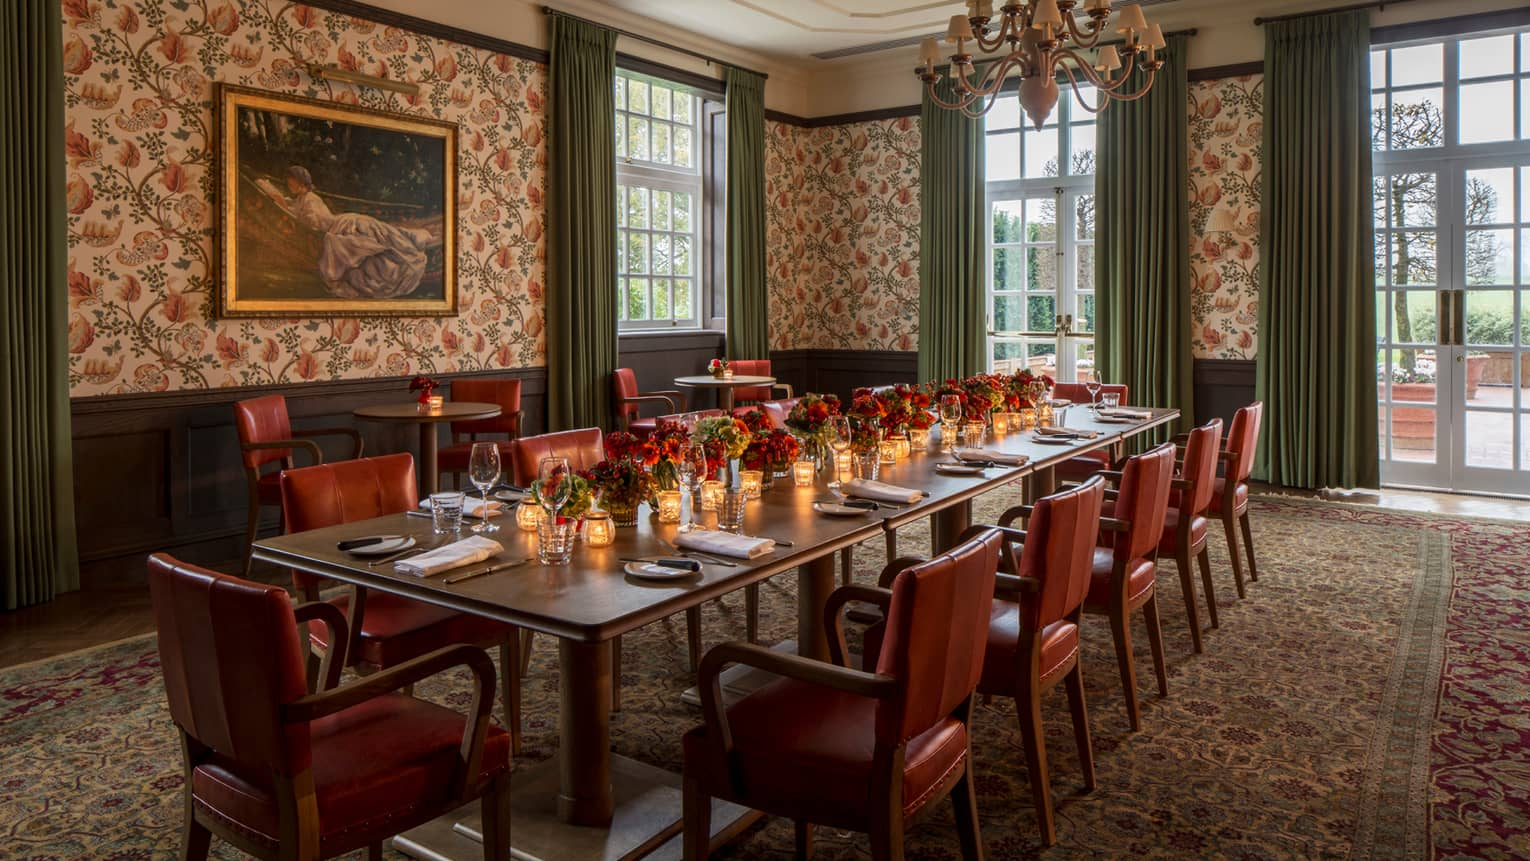 Long private dining table with candles, red flowers by corner windows, tall ceilings, floral wallpaper